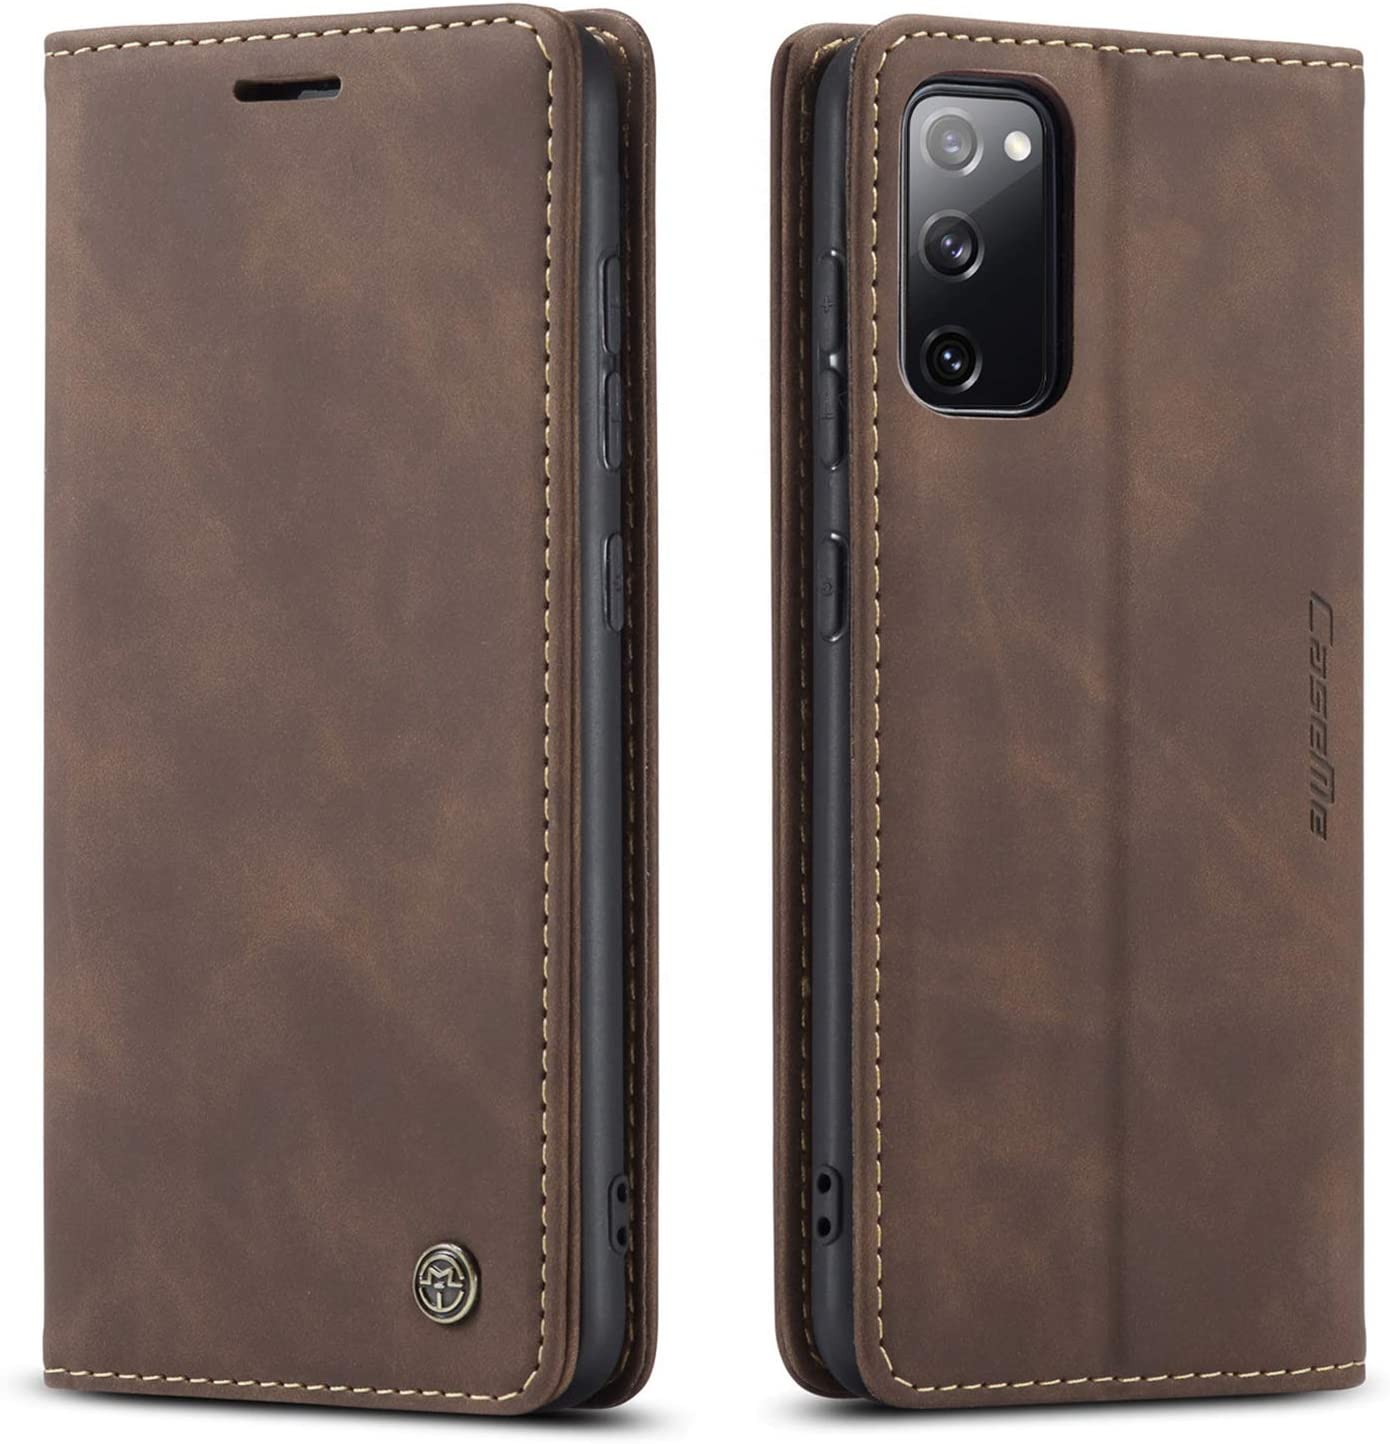 Samsung Galaxy S20 FE 5G Wallet Case Cover, Magnetic Stand Flip Protective Leather Case Purse Style with ID & Credit Card Holder Case for Samsung Galaxy S20 FE 5G 6.5 inch (Coffee)